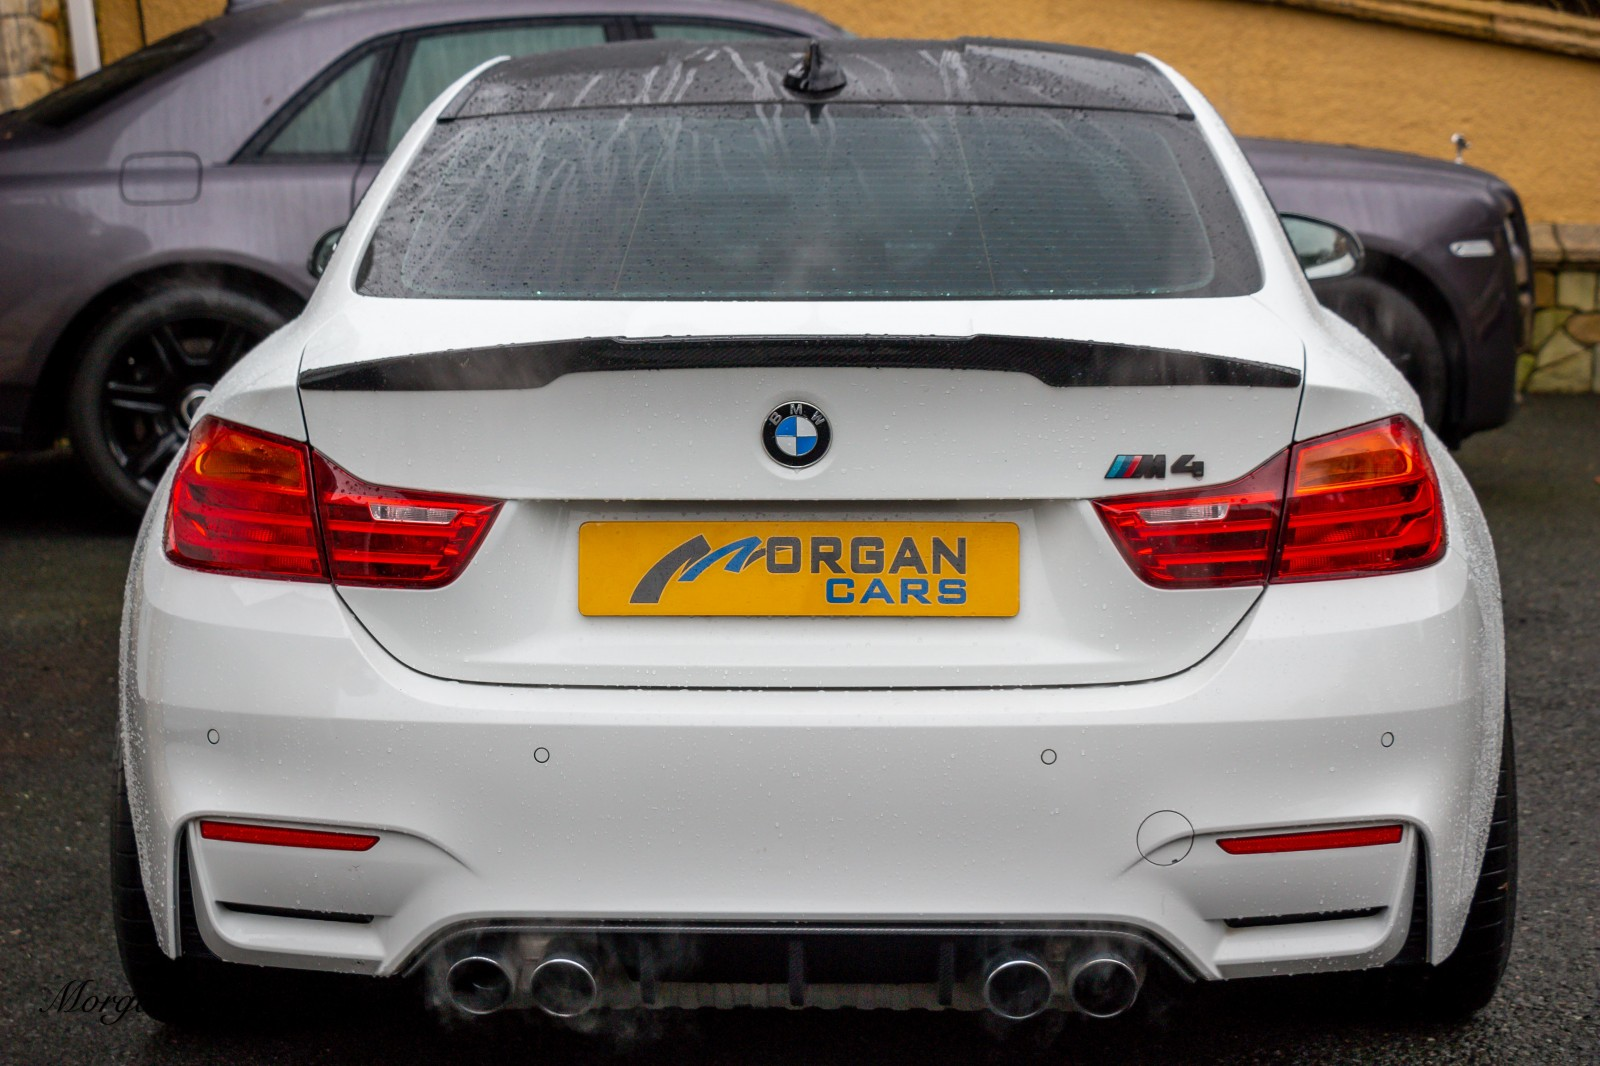 2016 BMW M4 M4 3.0 DCT COUPE Petrol Semi Auto – Morgan Cars 9 Mound Road, Warrenpoint, Newry BT34 3LW, UK full